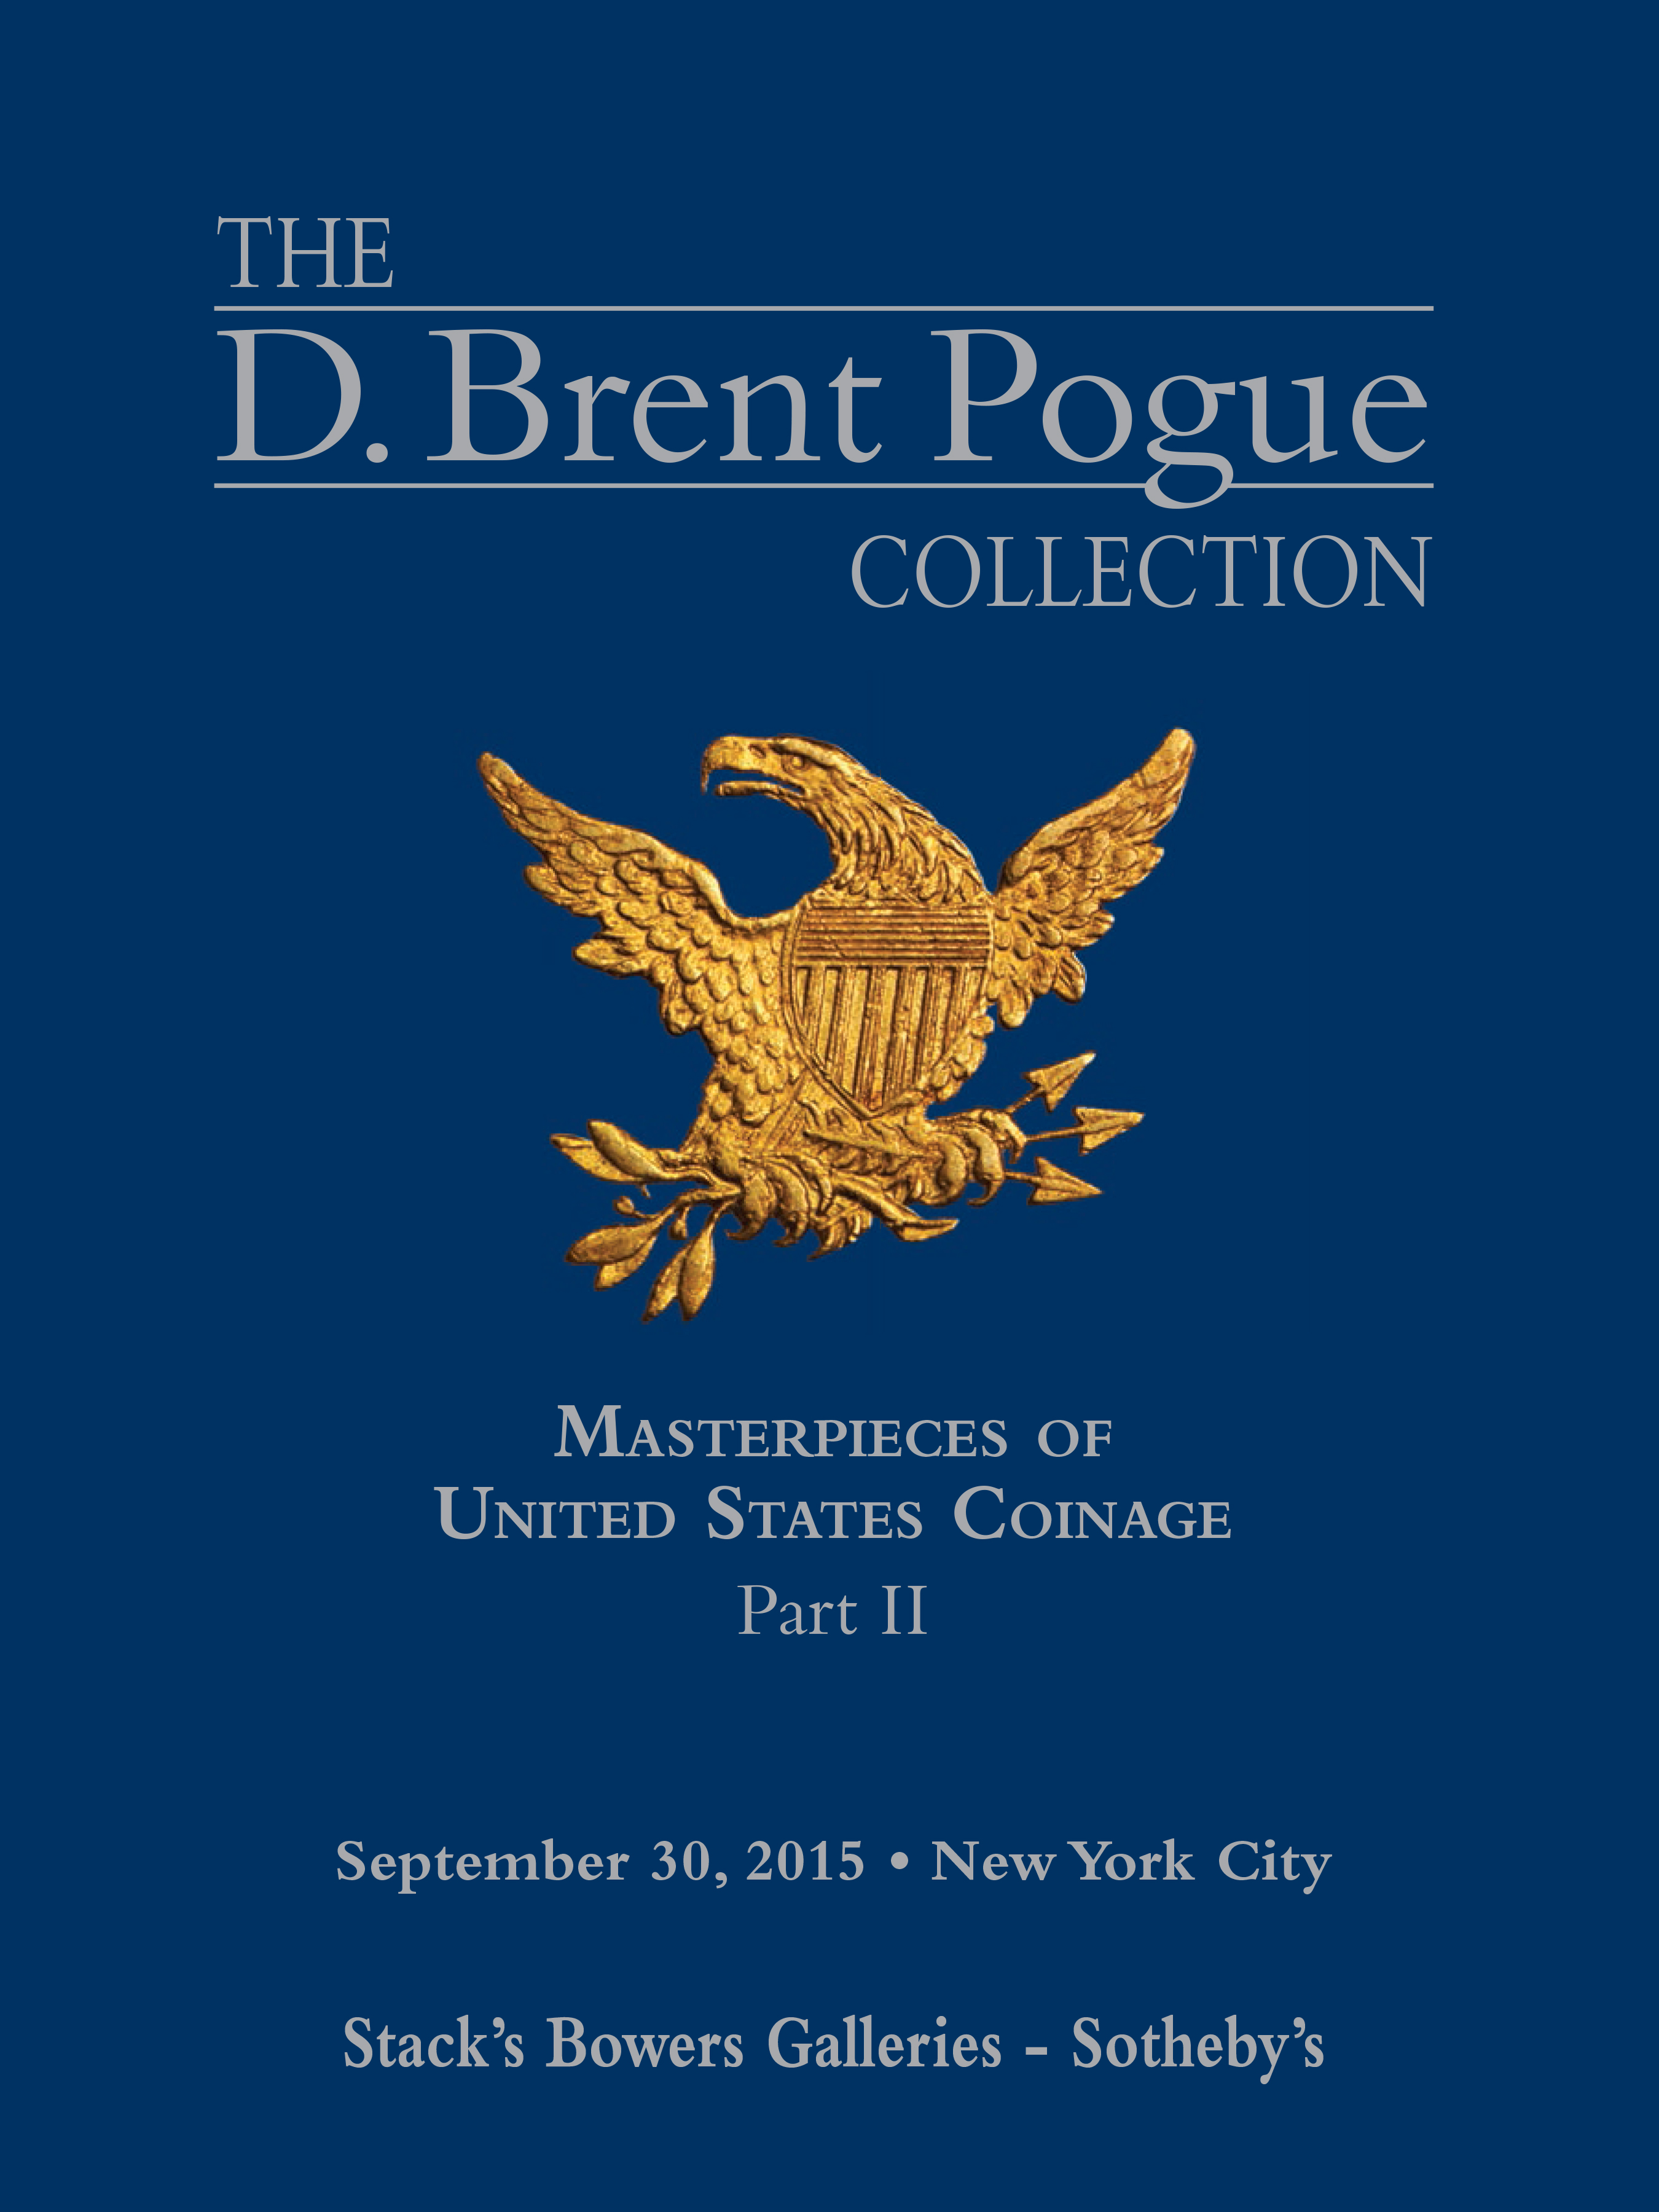 The D. Brent Pogue Collection, Masterpieces of United States Coinage, Part II